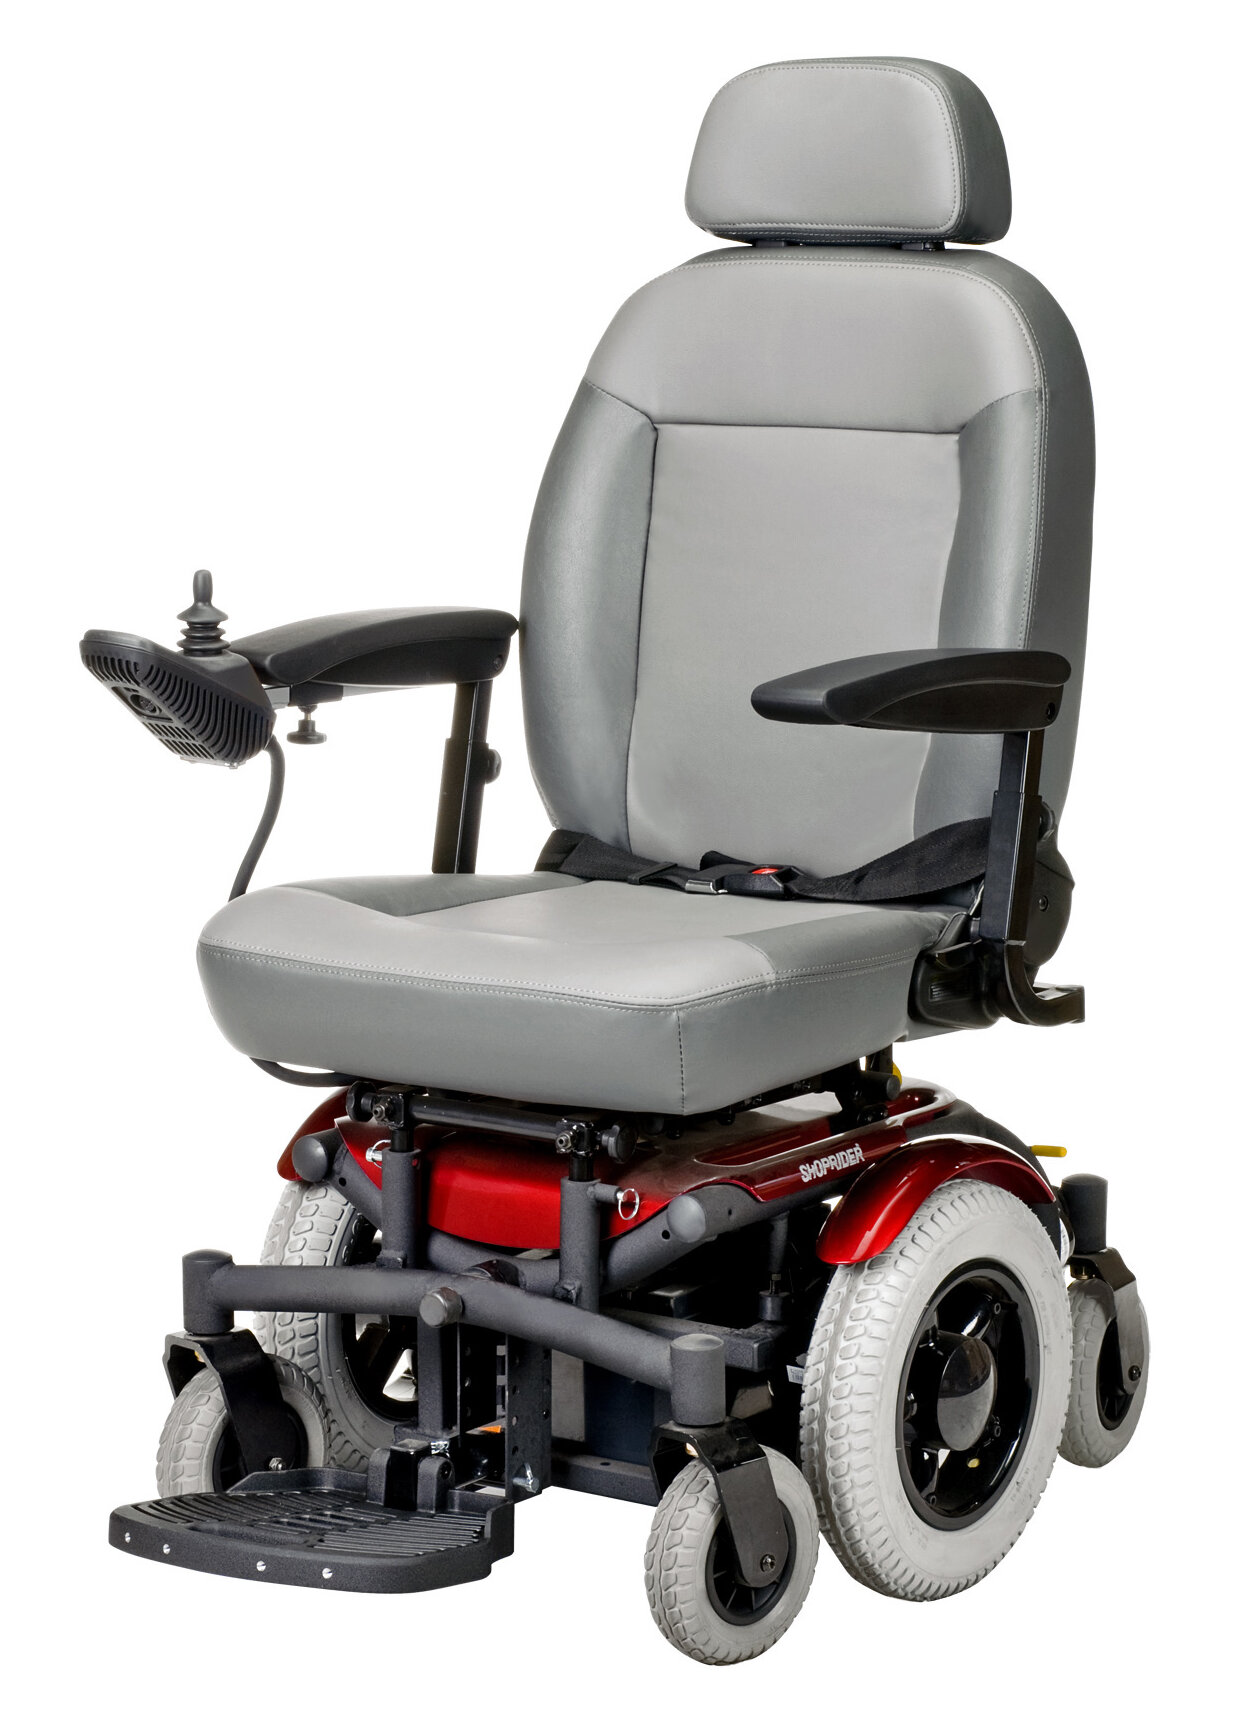 Shoprider 6 runner 14 power chair electric wheelchair mid for Mobility chair